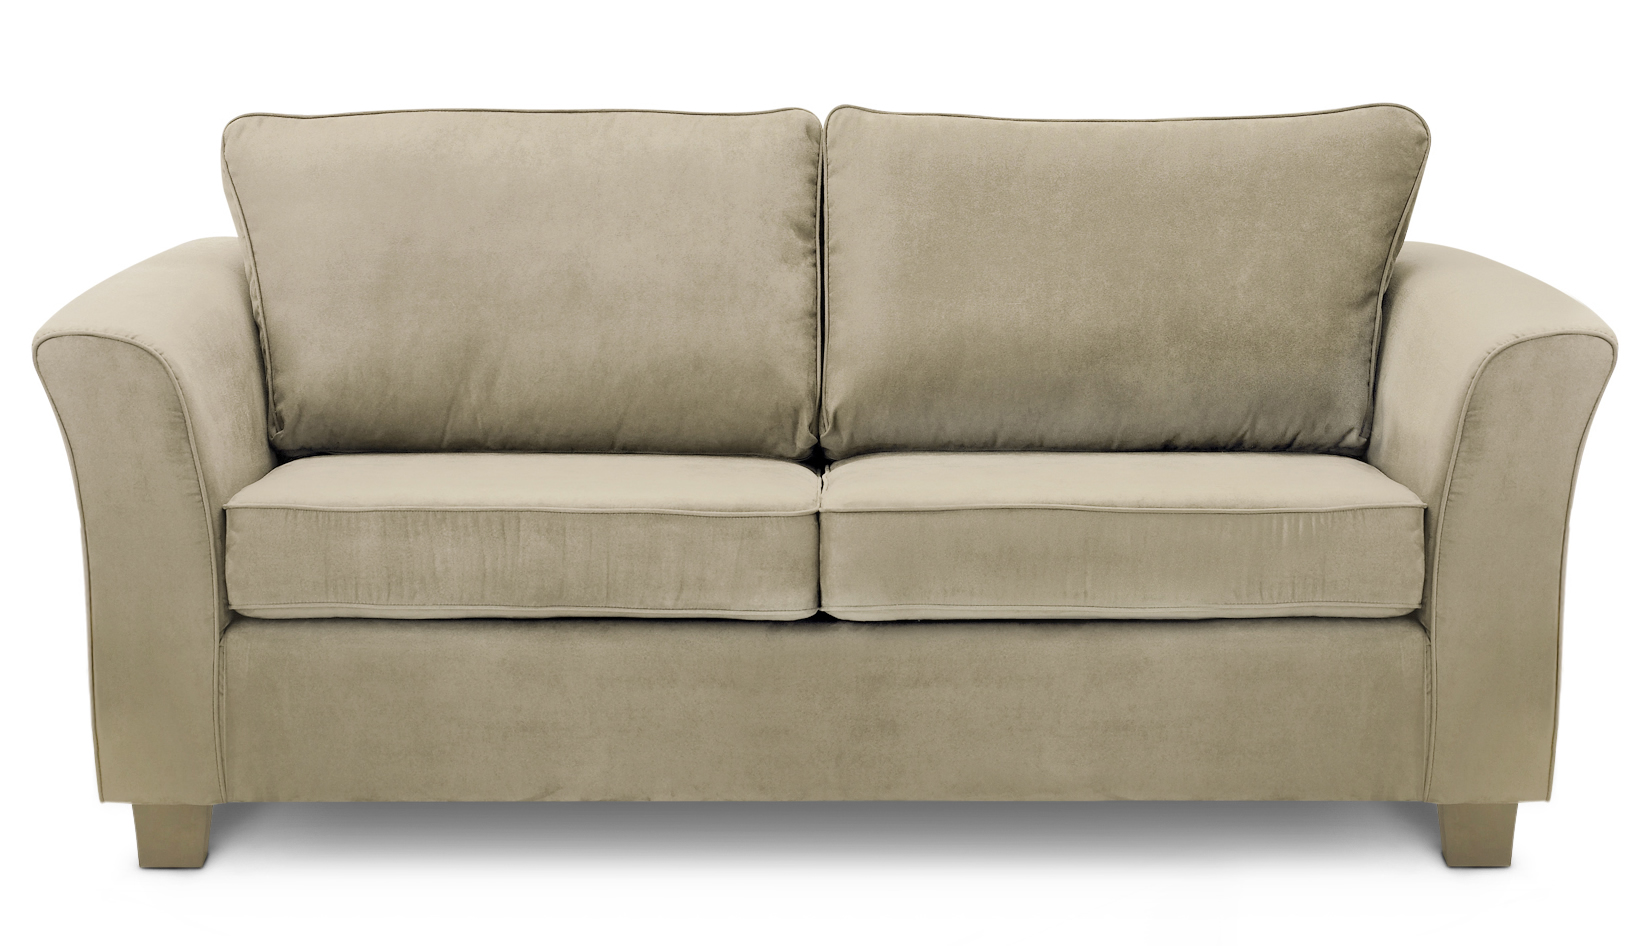 Couches Chairs Cheap And